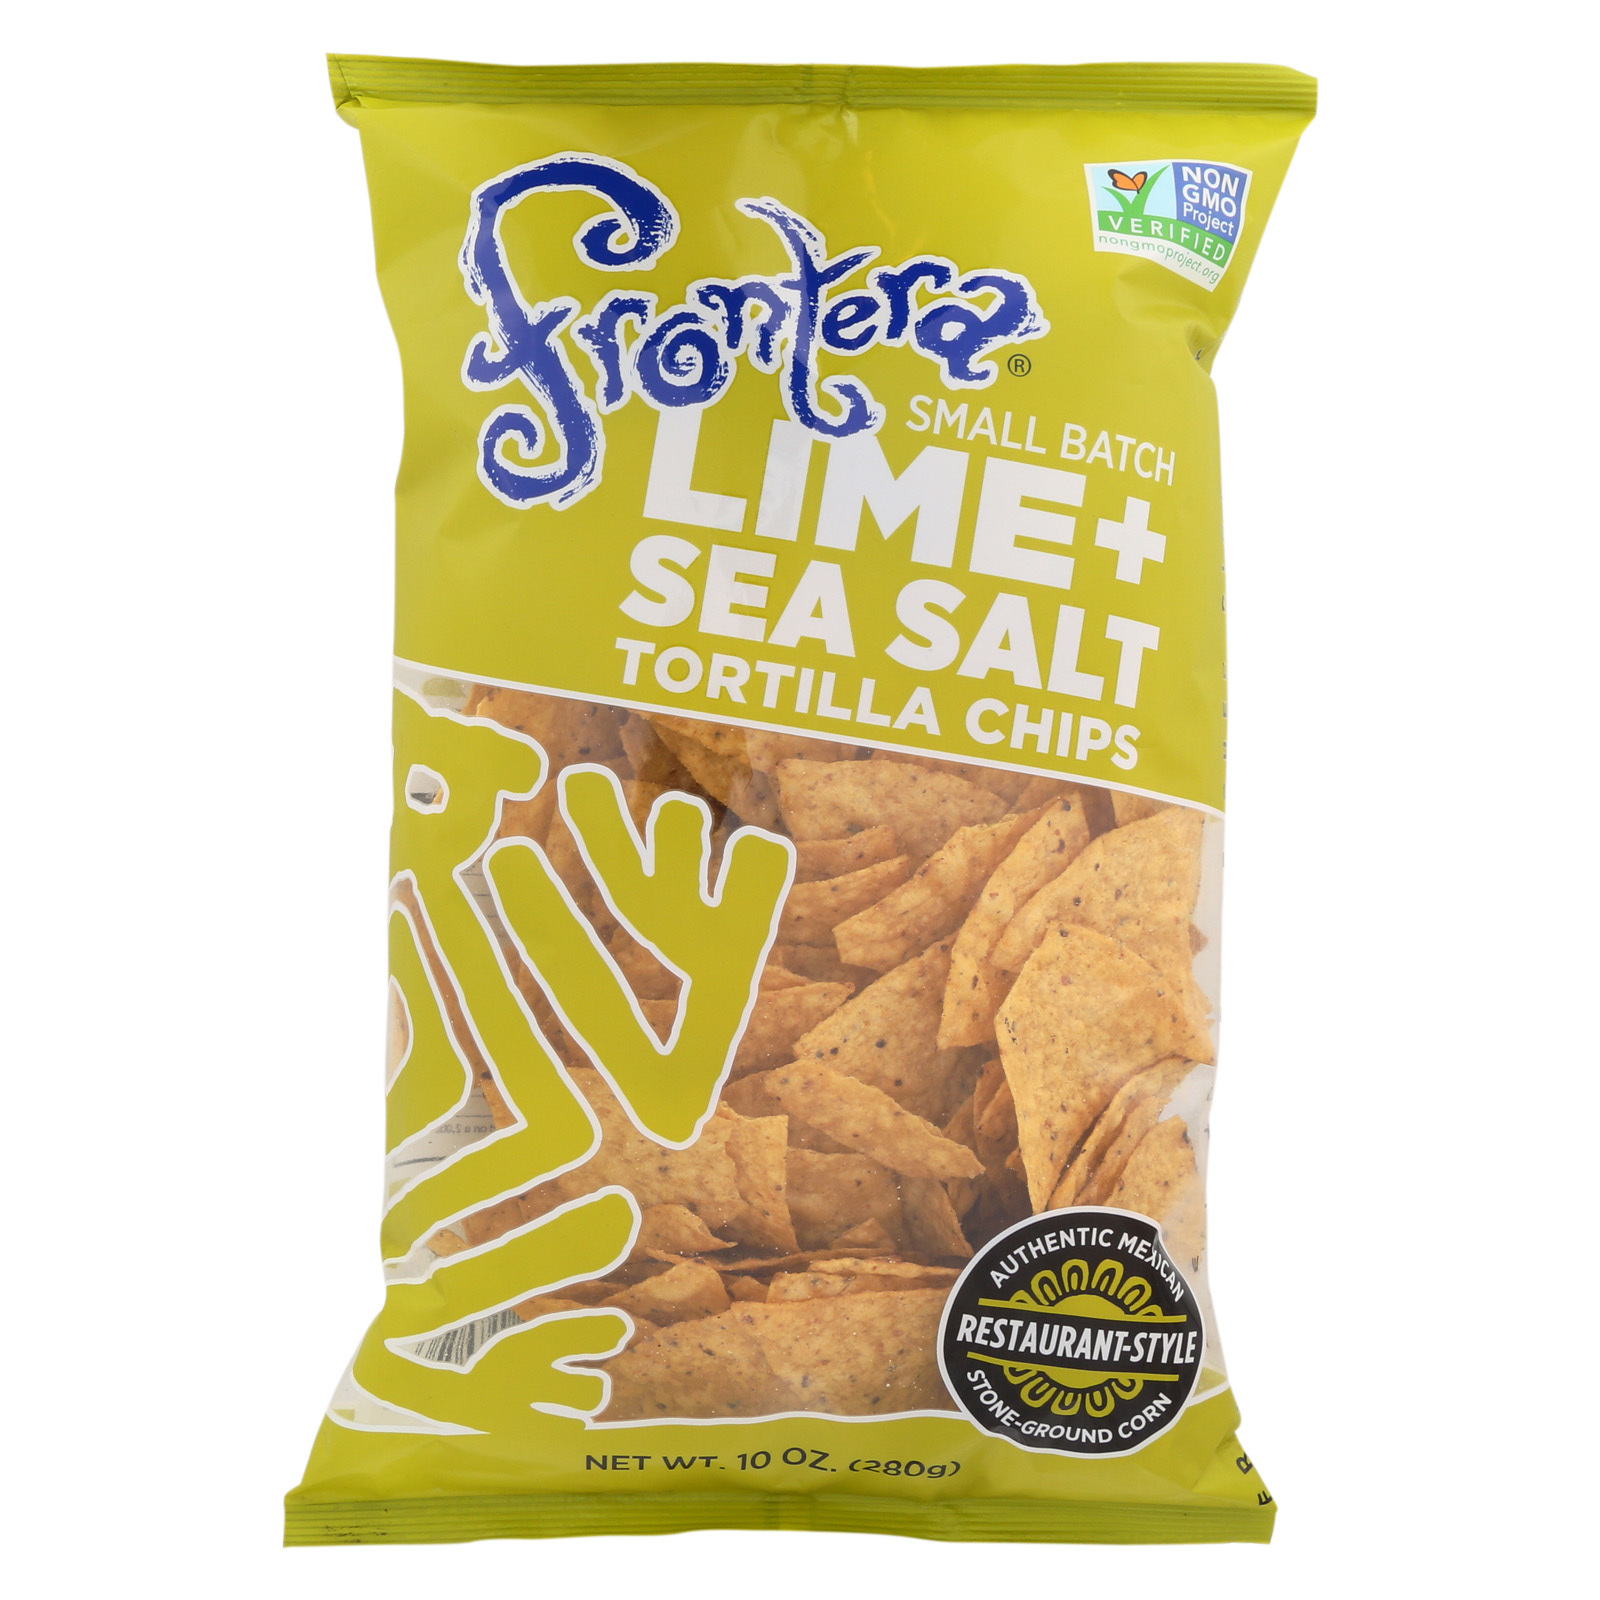 Frontera Foods Lime and Sea Salt Tortilla Chips - Tortilla Chips - Case of 12 - 10 oz.